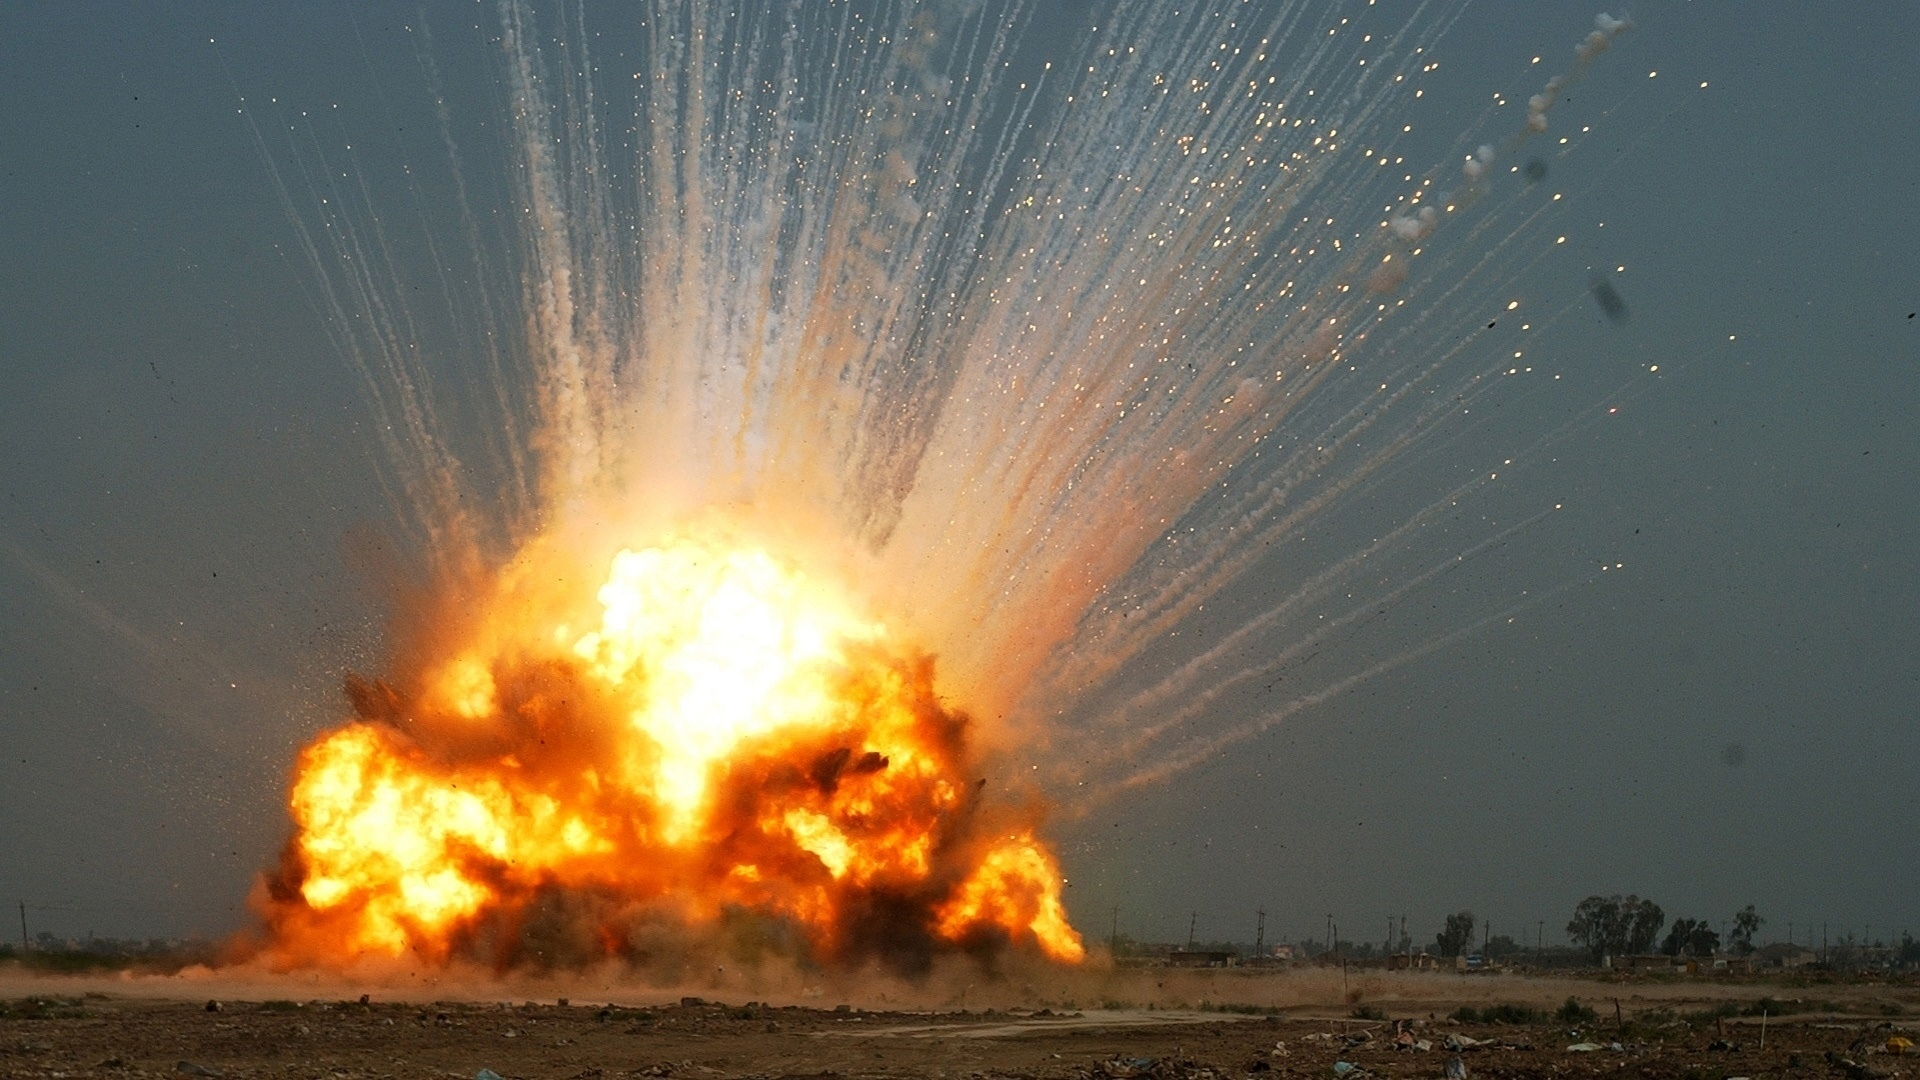 military explosion fire bomb dark landscapes